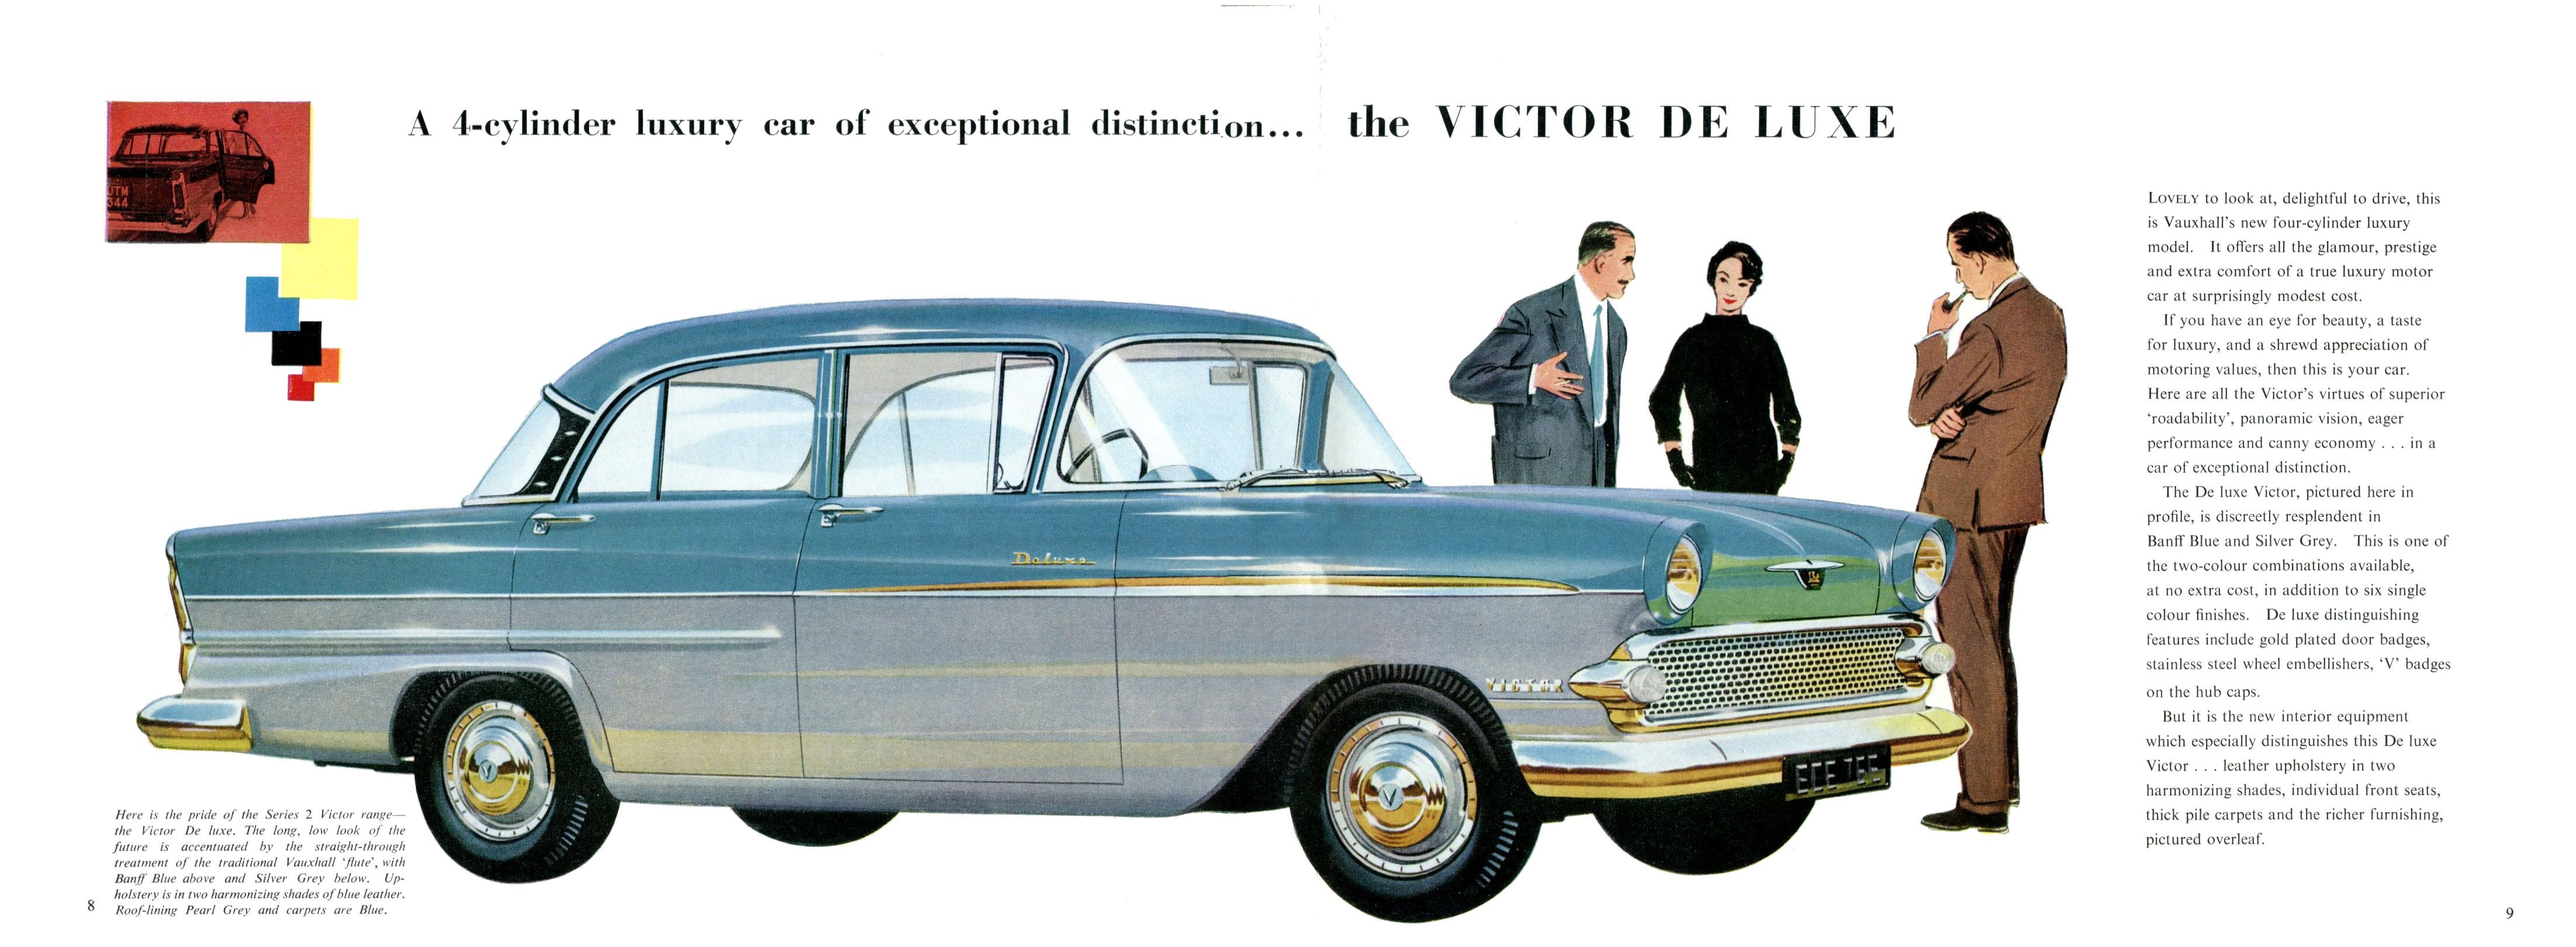 victor 1960 olivier soustelle from france contributed these scans